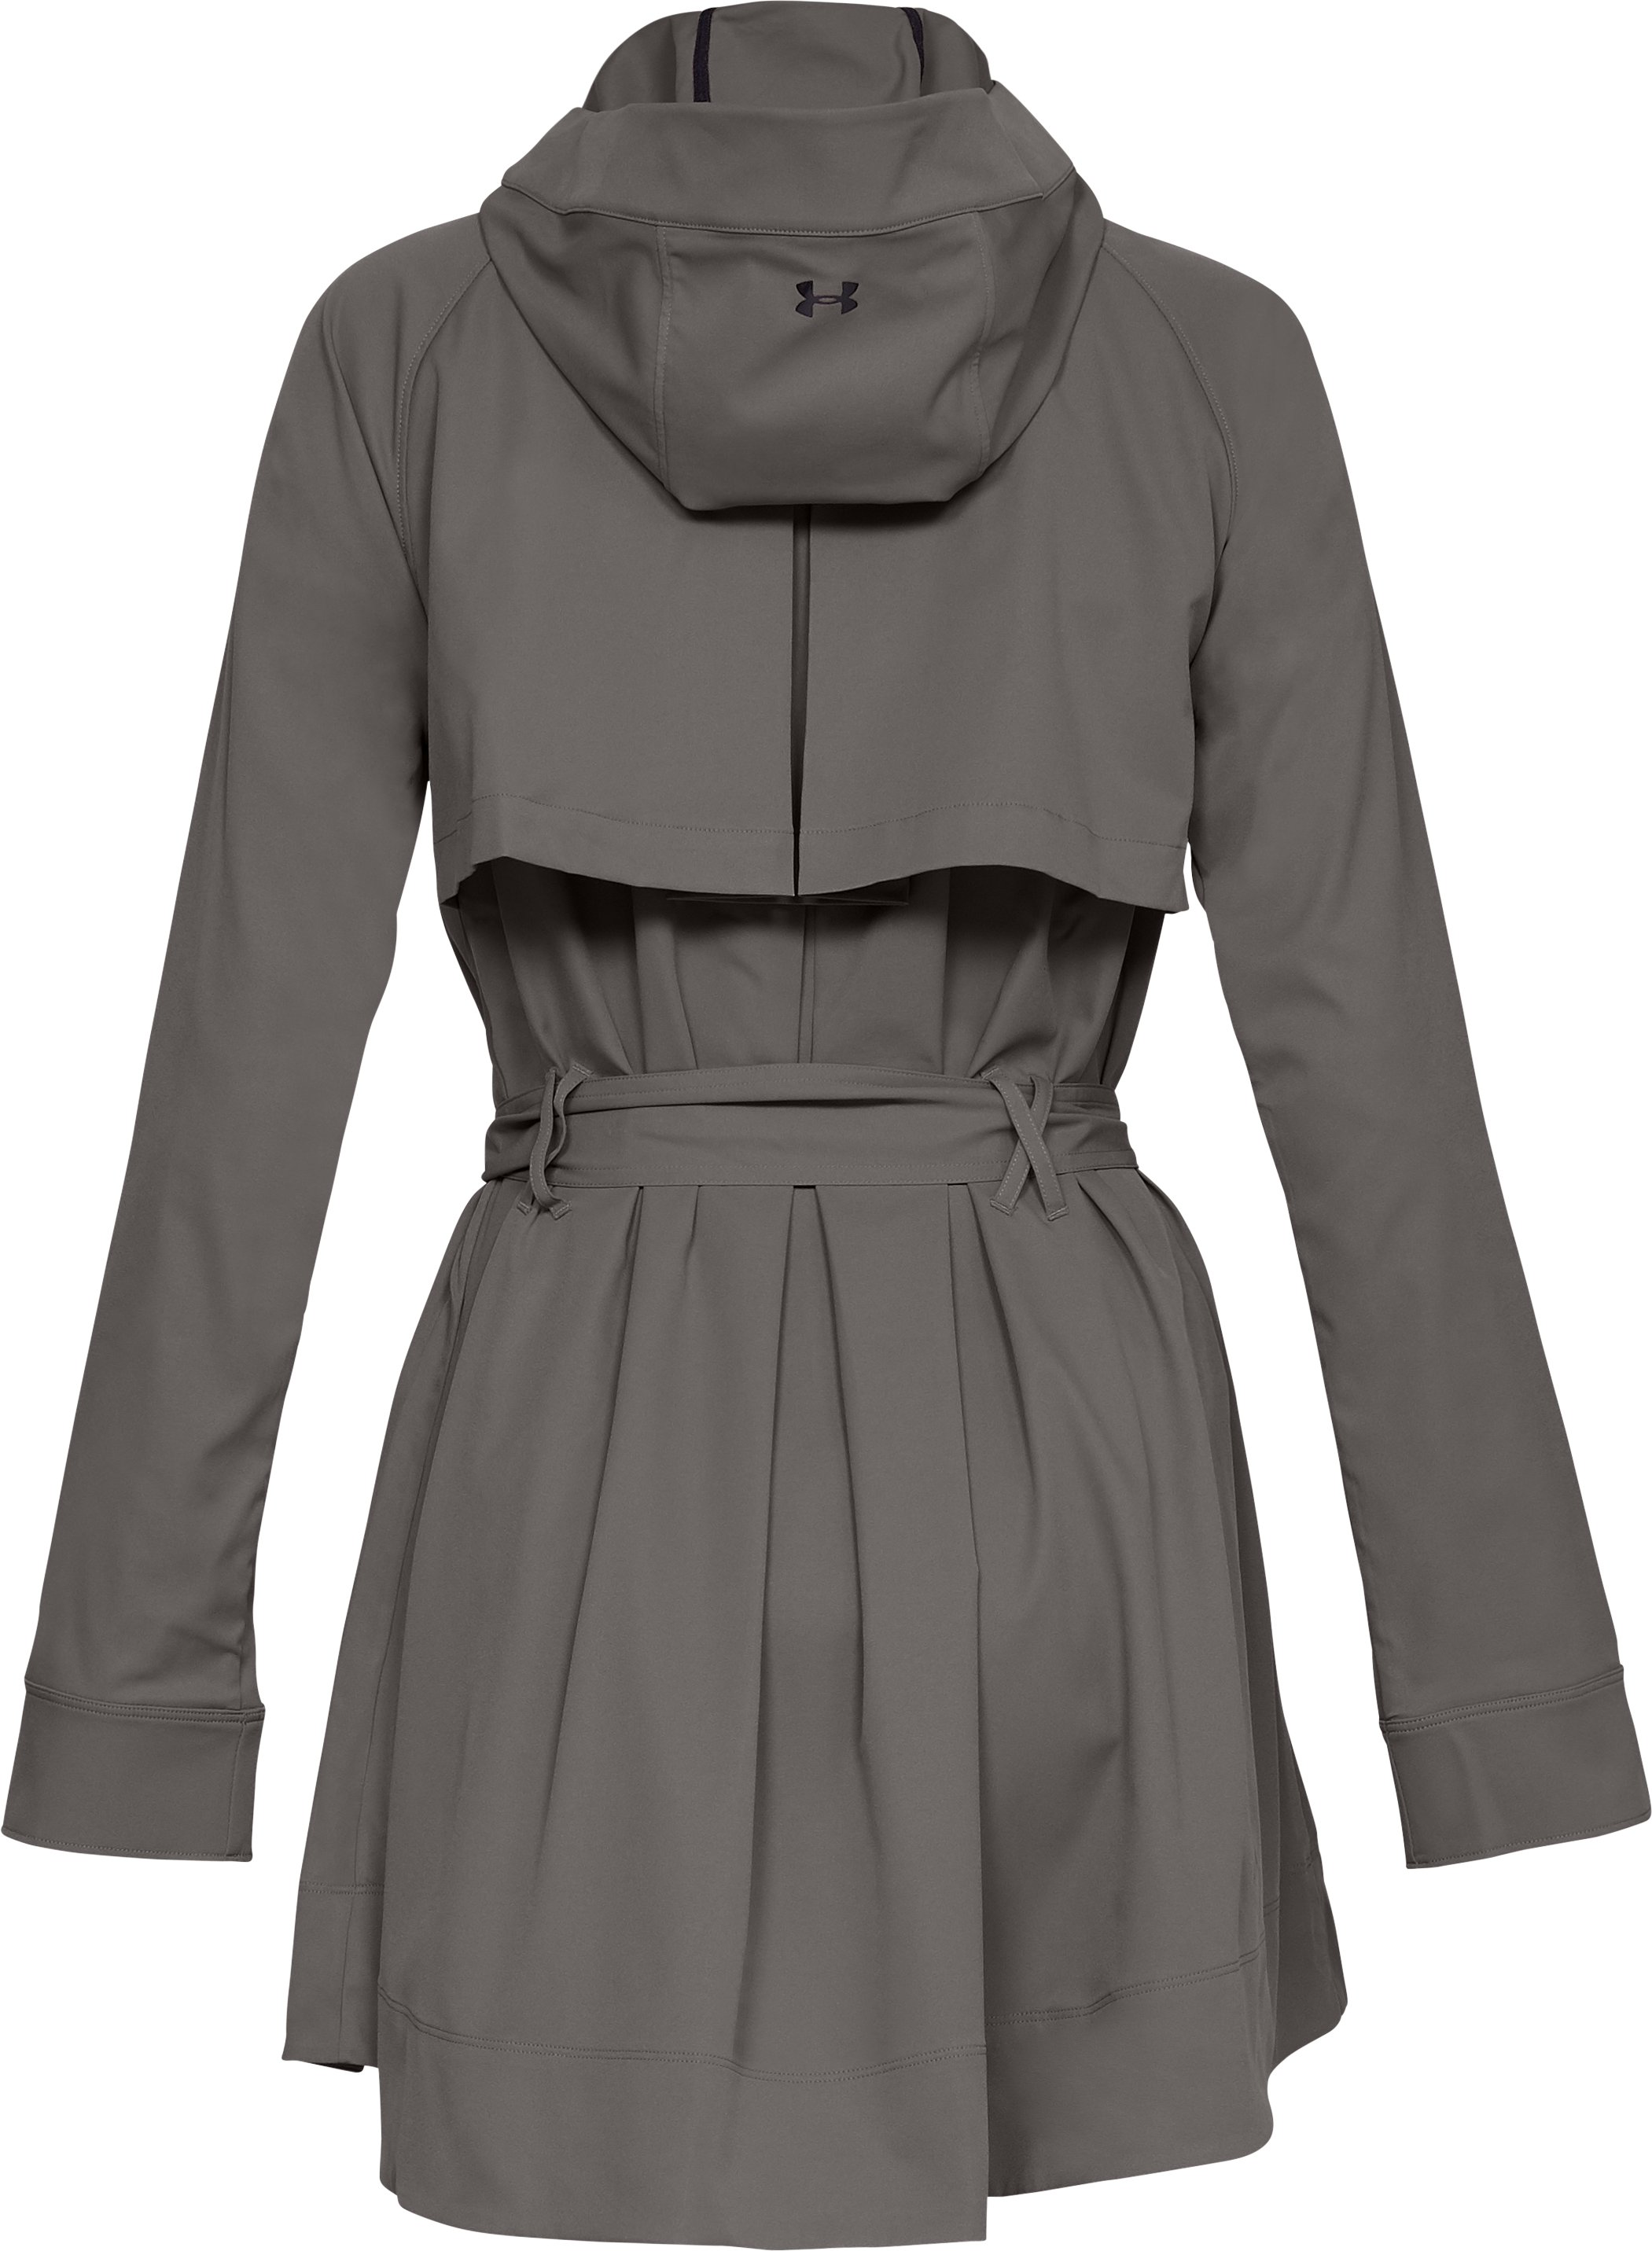 Women's Misty Copeland Signature Woven Trench, MINK GRAY,